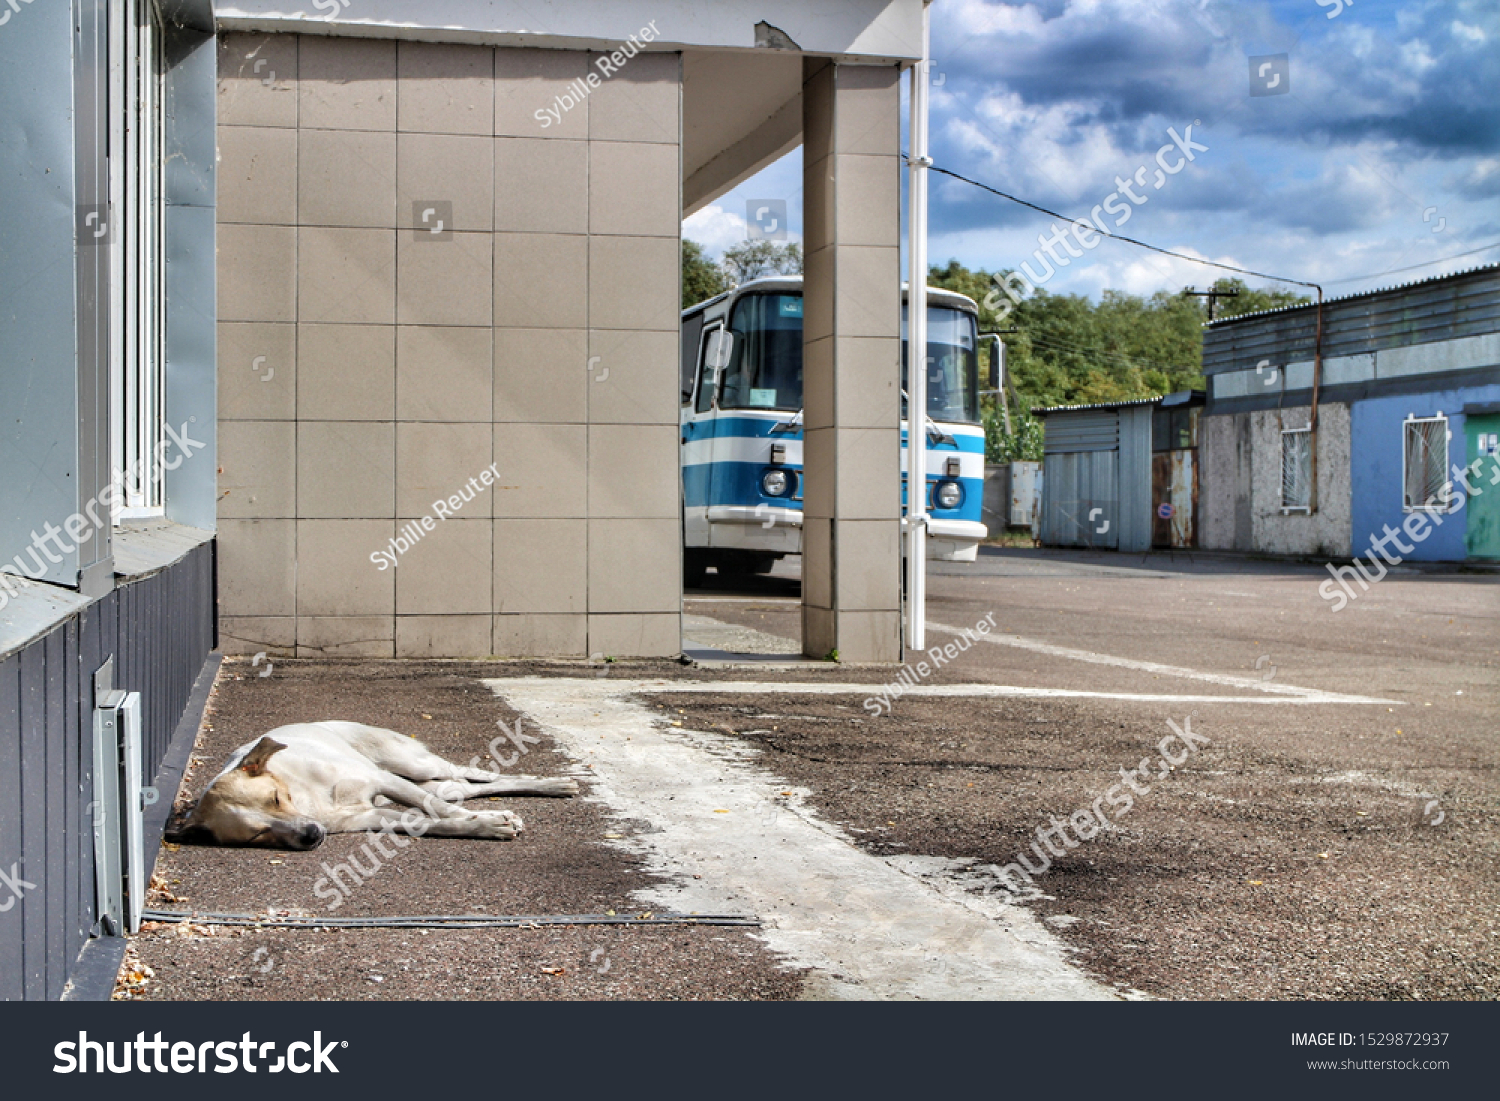 stock-photo-a-stray-dog-rests-in-front-o